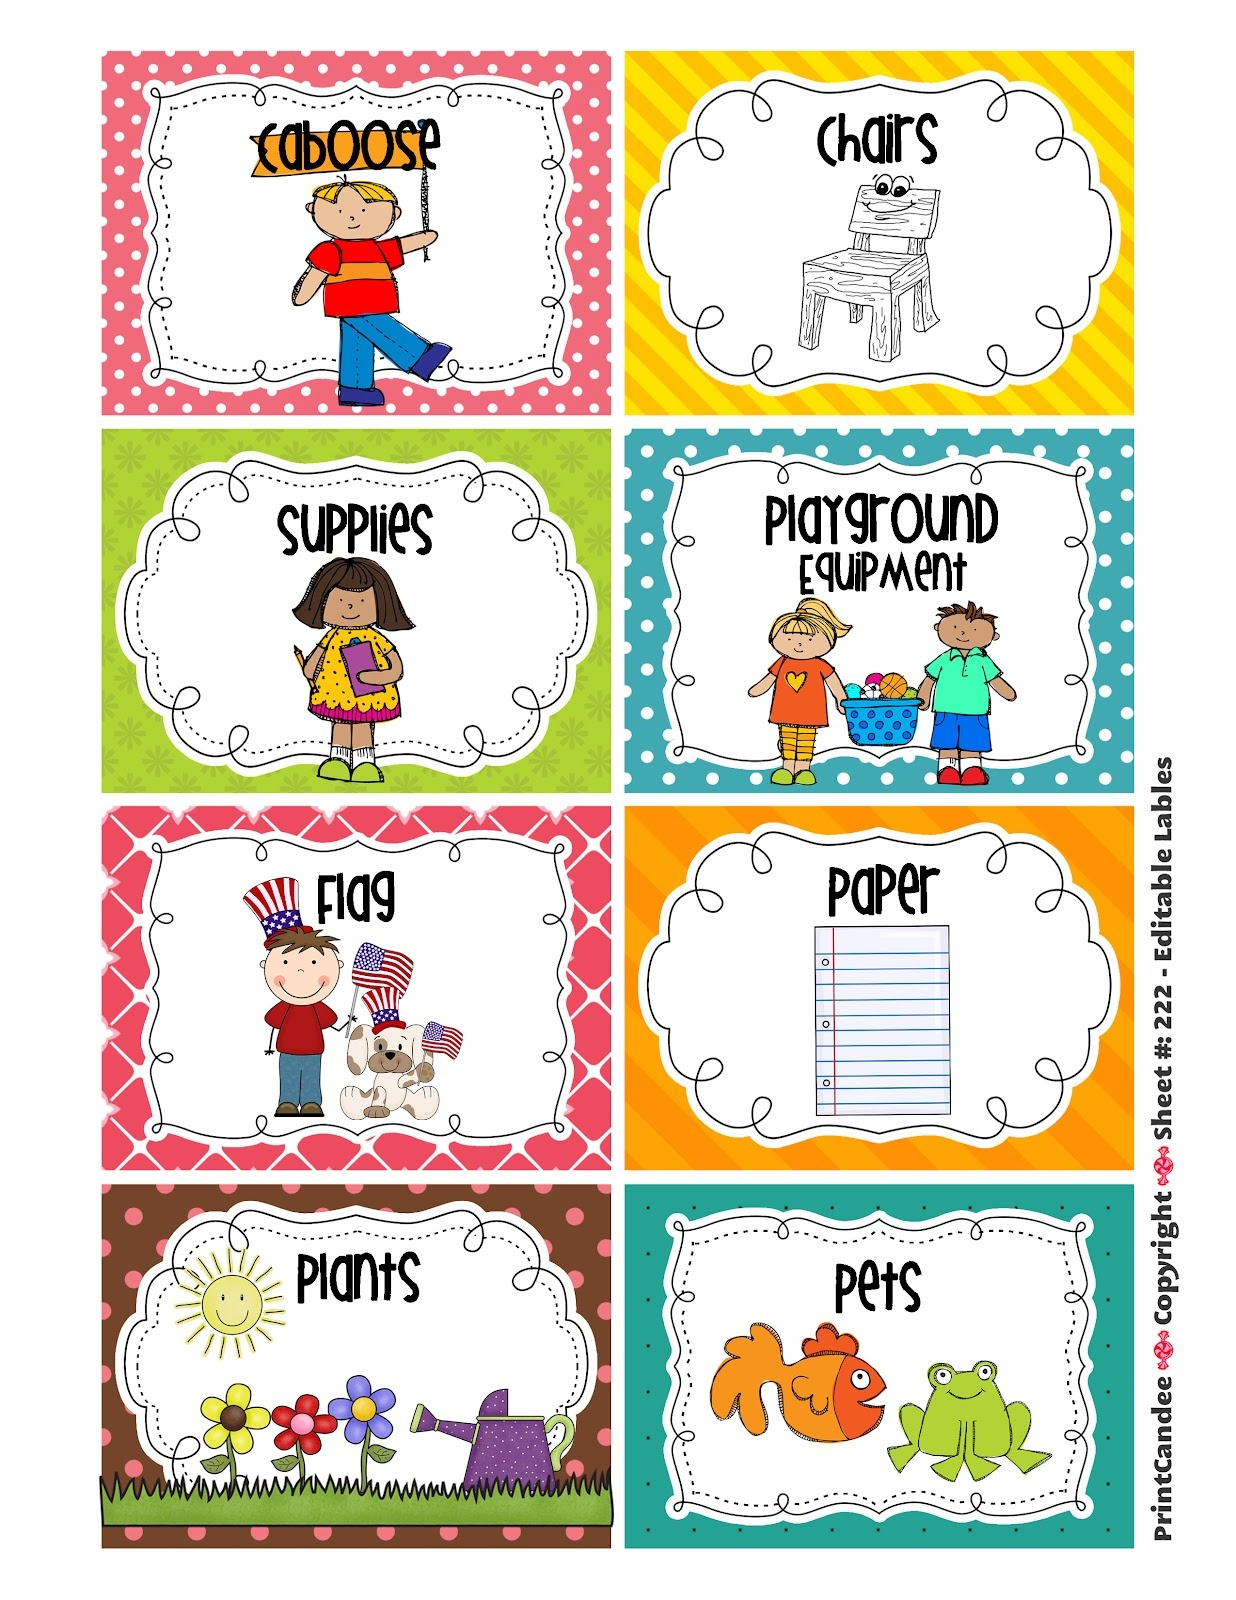 Free Classroom Helpers Cliparts, Download Free Clip Art, Free Clip - Preschool Classroom Helper Labels Free Printable